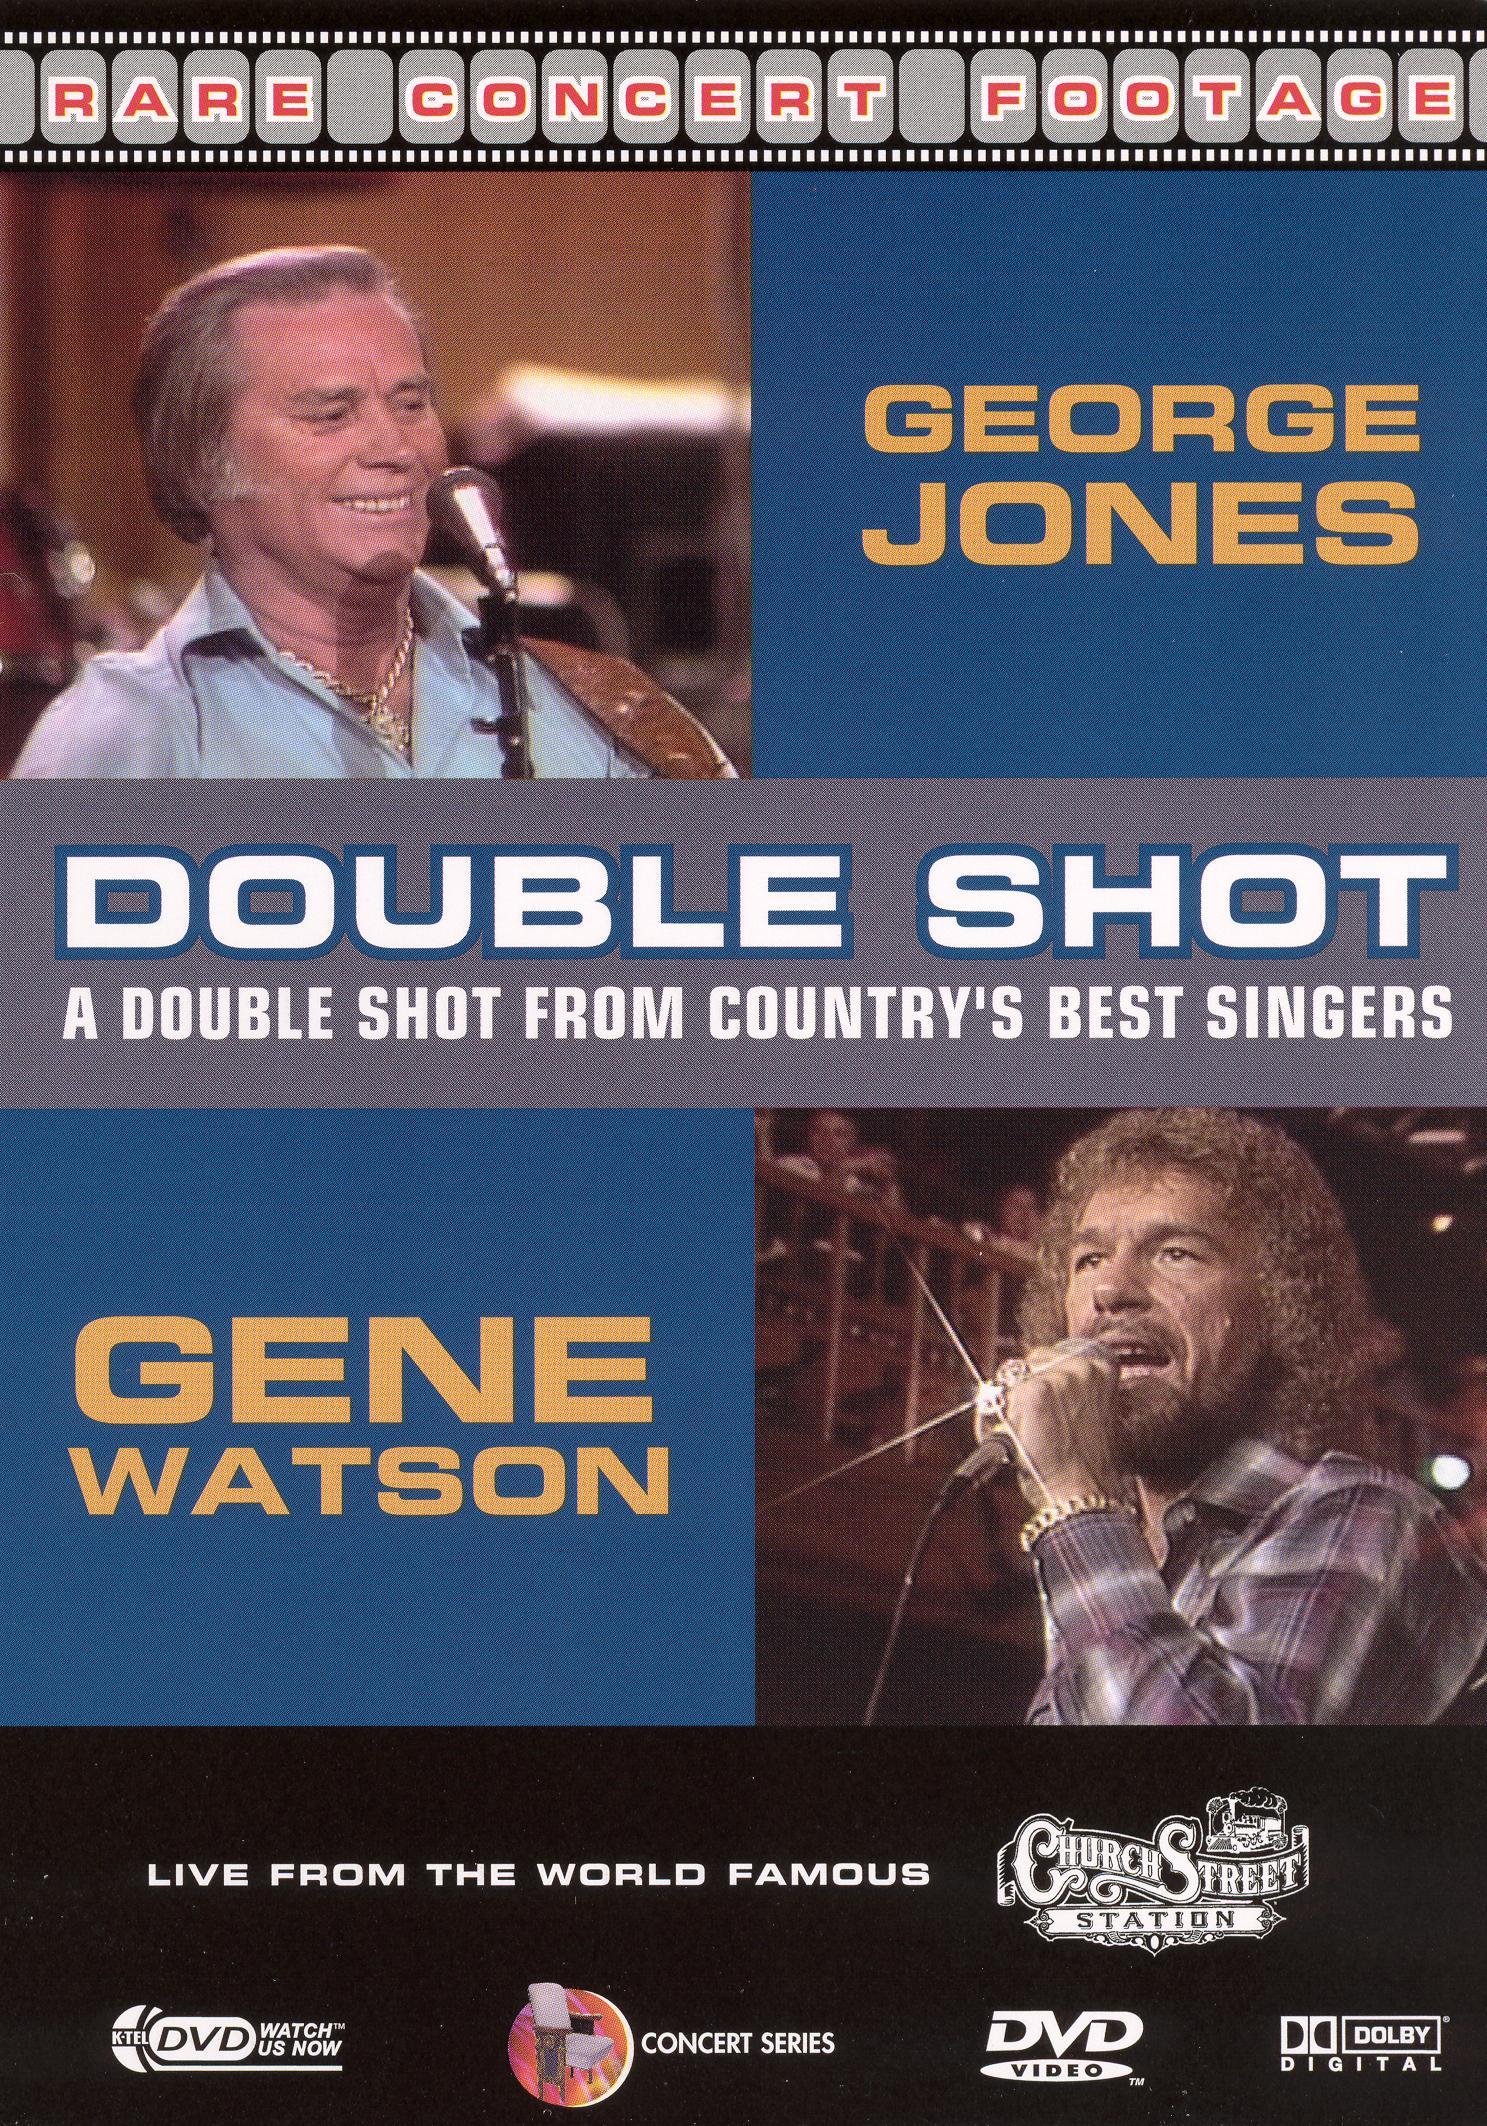 George Jones and Gene Watson: A Double Shot From Country's Best Singers